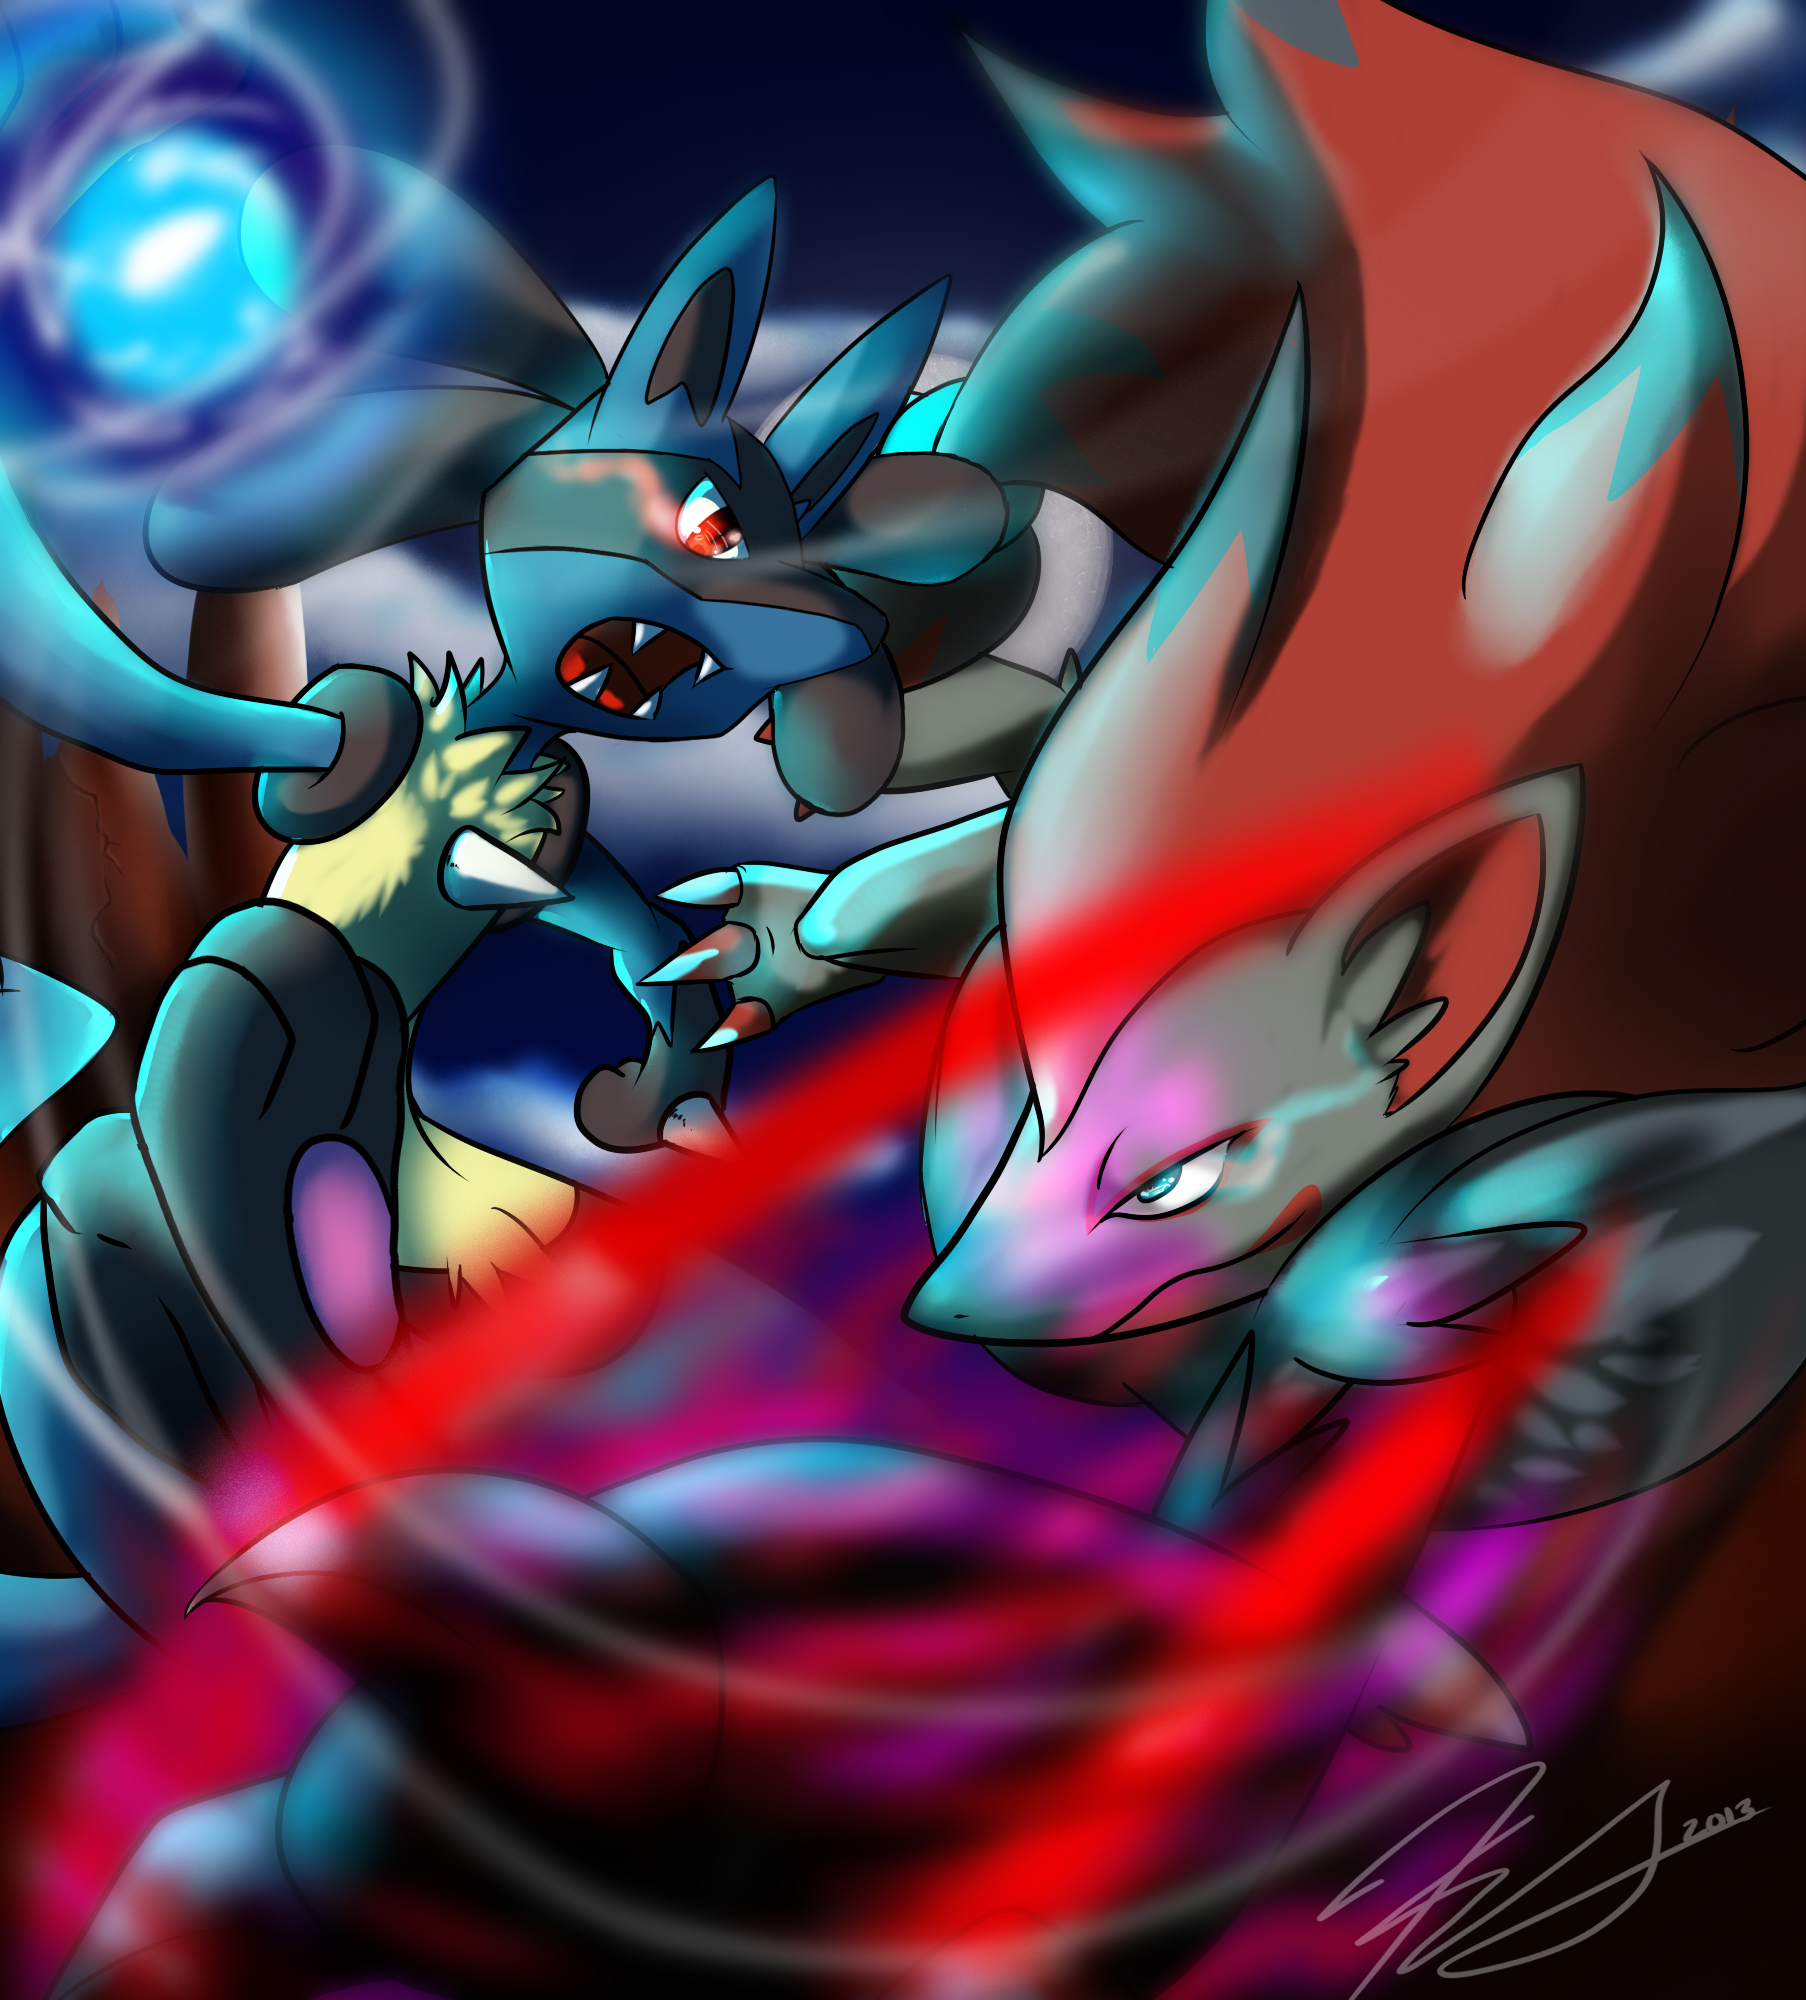 Lucario Vs Zoroark Pokémon Know Your Meme